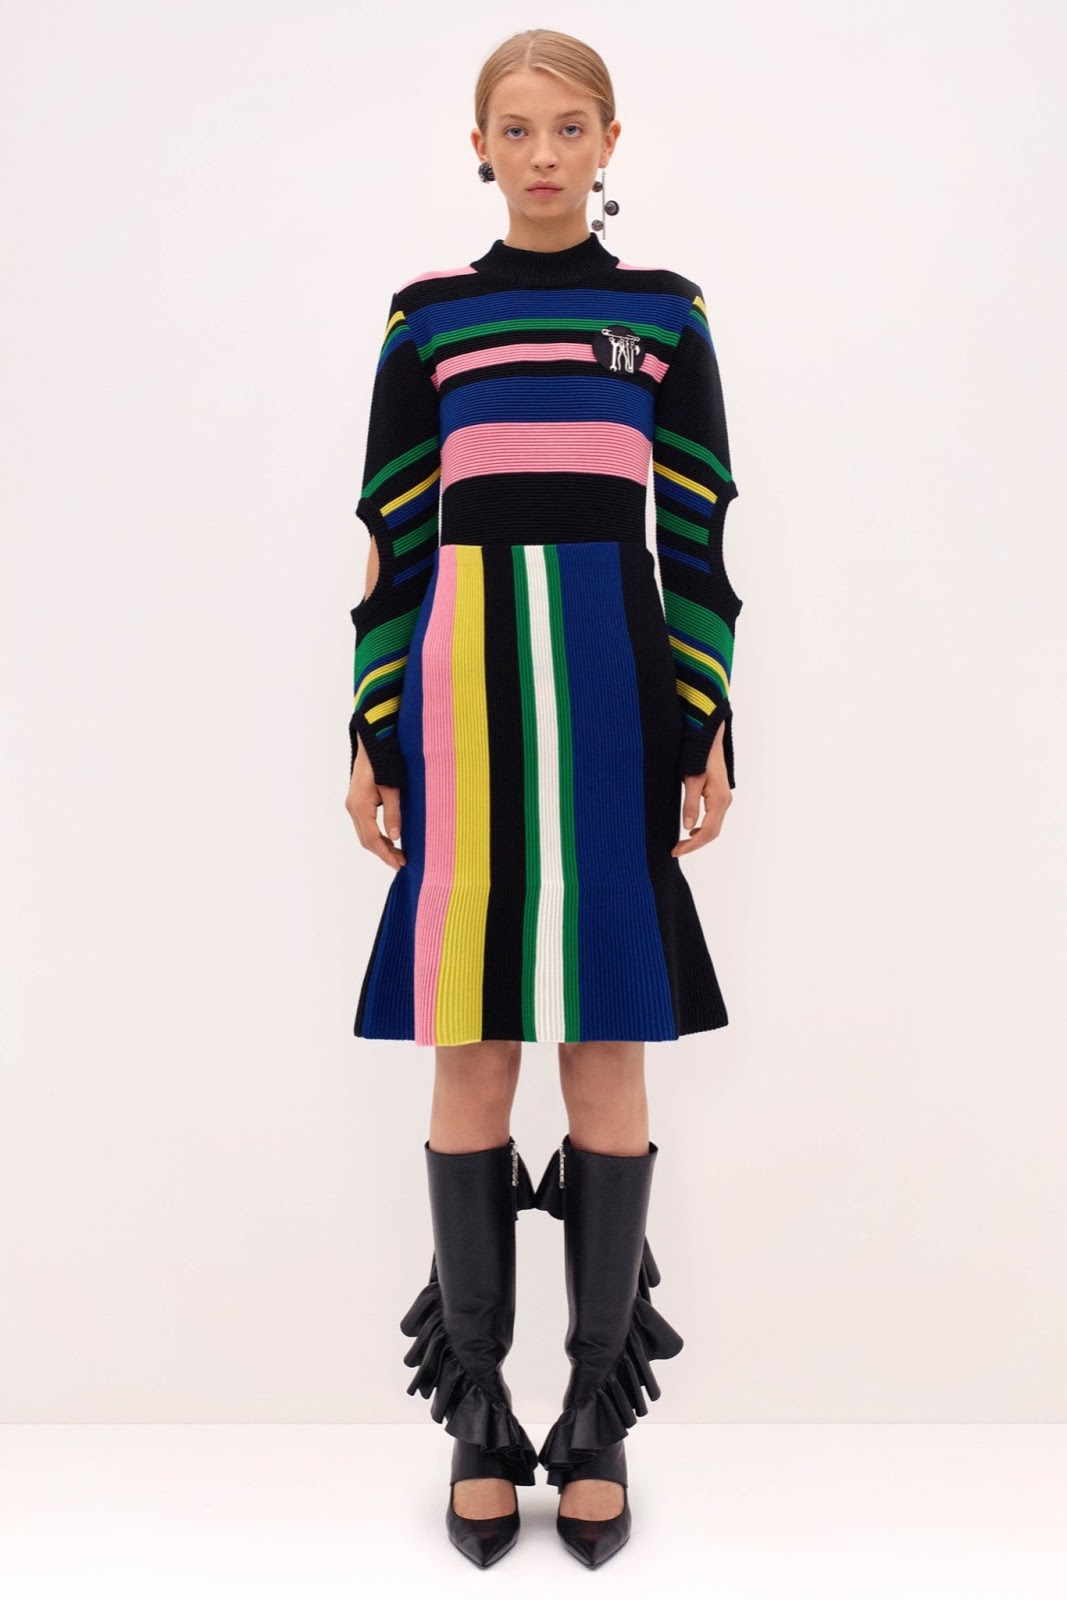 jw-anderson-resort-2016, j-w-anderson-resort-2016, jw-anderson-resort, j-w-anderson-resort, jw-anderson, j-w-anderson, resort-2016, collection-resort-2016, cruise-2016, du-dessin-aux-podiums, dudessinauxpodiums